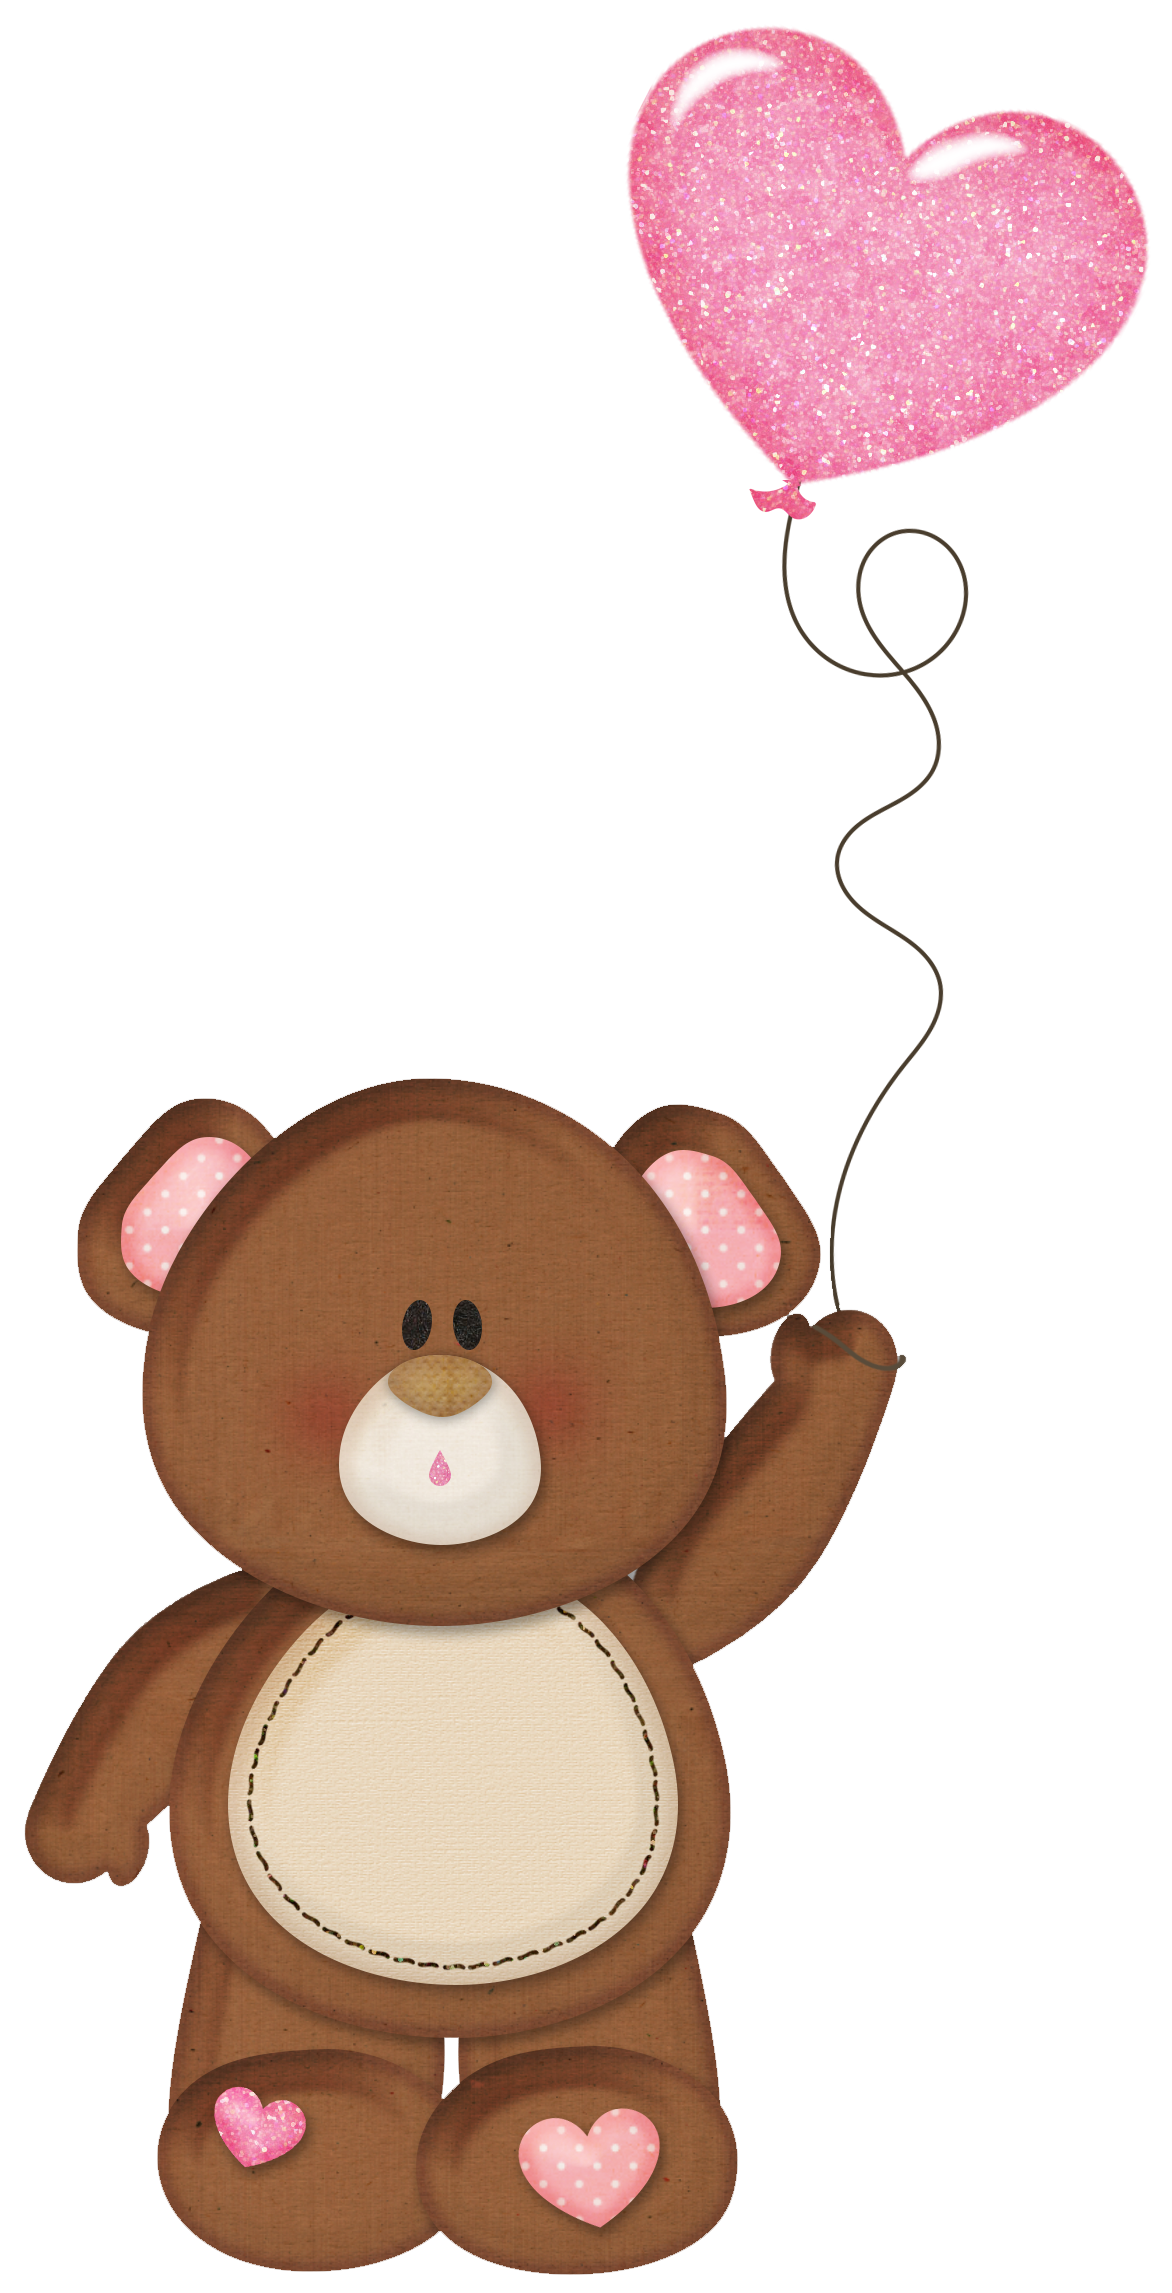 Clipart balloon gate. Brown teddy with pink